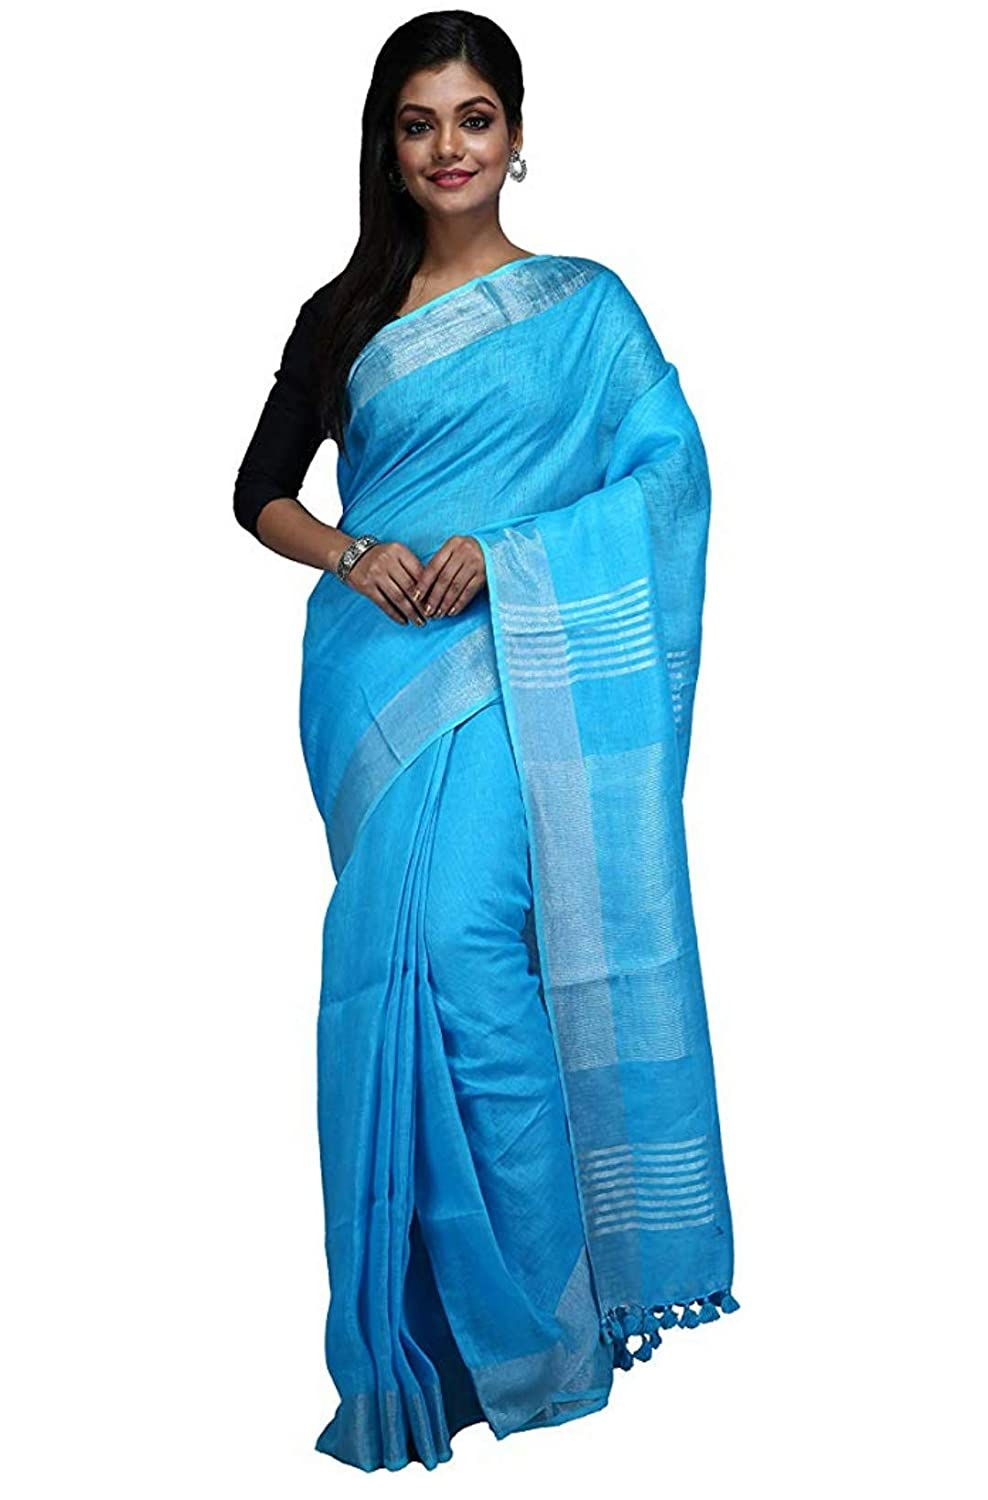 Buy HANDLOOM FABRIC WOMEN'S SKY BLUE COLOUR LINEN SAREE WITH